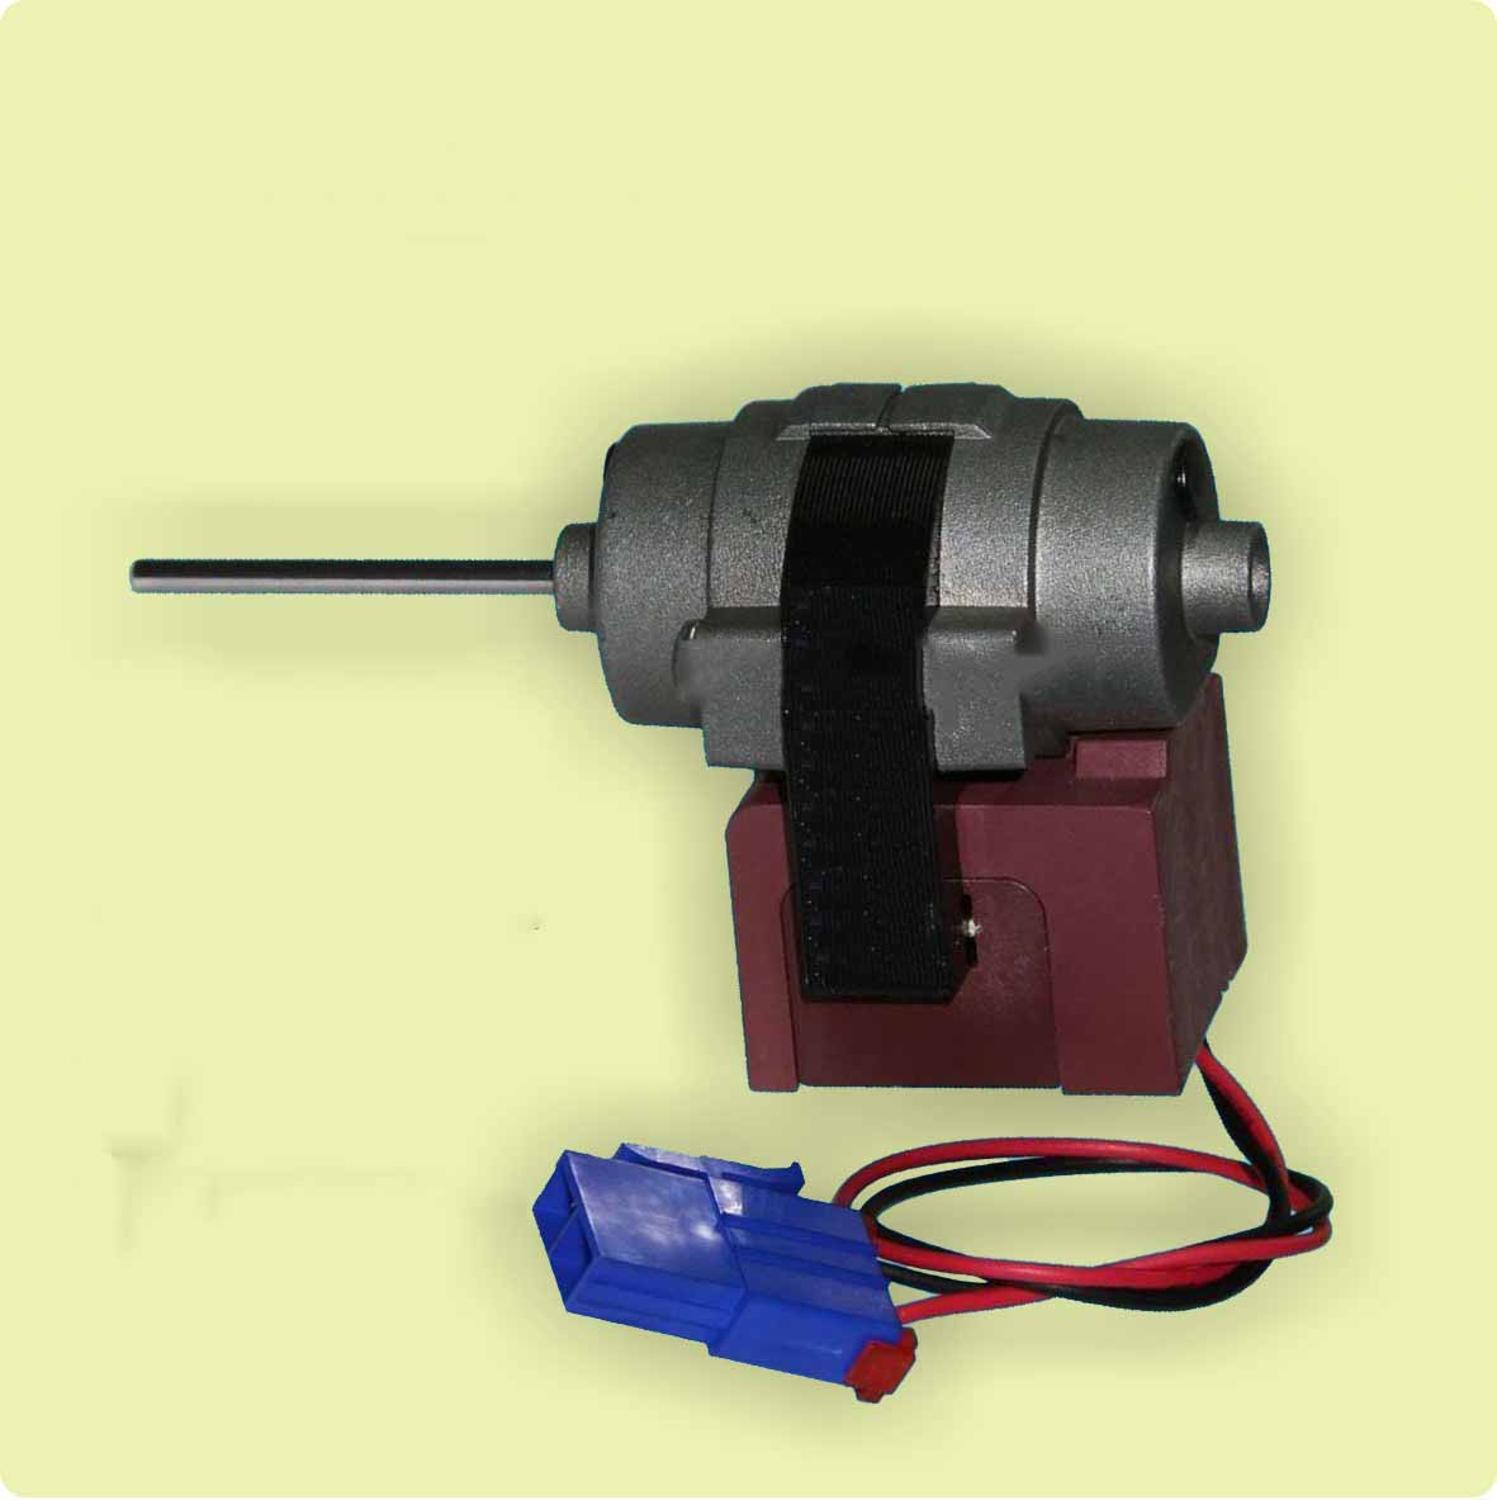 New Good Working For Double Door Switch Refrigerator Fan Motor Motor D4612AAA22 D4612AAA18 D4612AAA21 = D4612AAA15